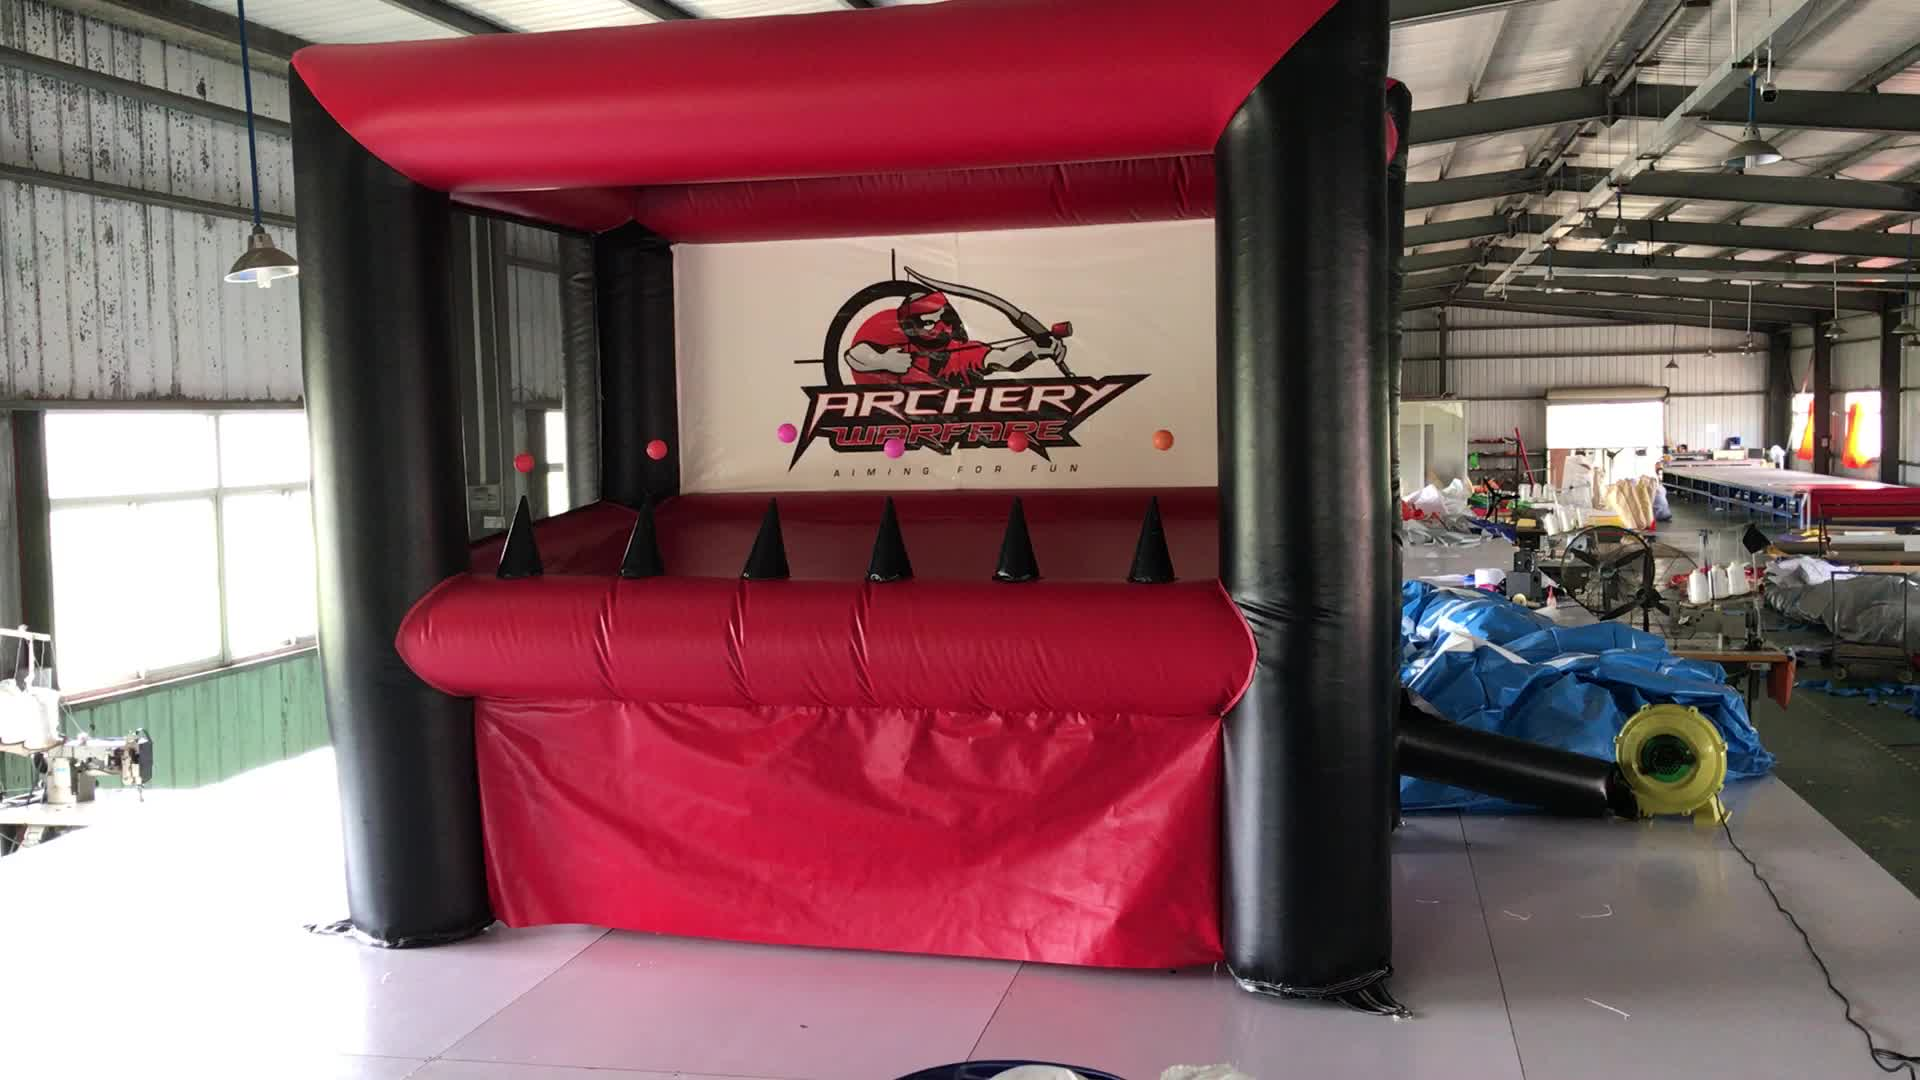 2019 JPF inflatable archery tag target for hover ball game